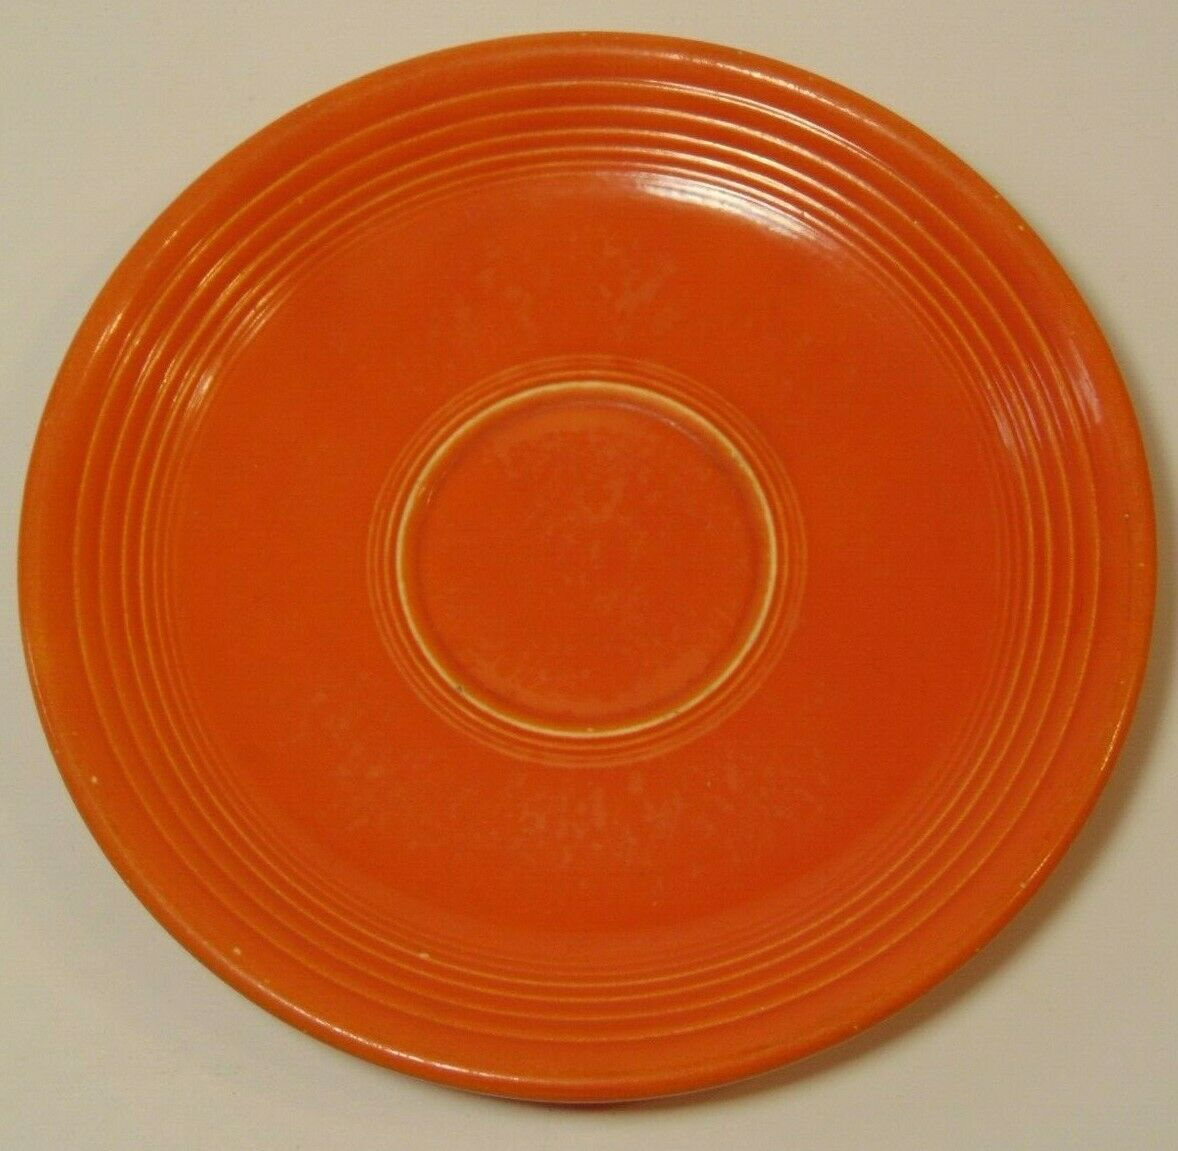 s l1600 - Antique 1936 RED ORANGE RADIOACTIVE FIESTA SAUCER PLATE GEIGER COUNTER READING Y